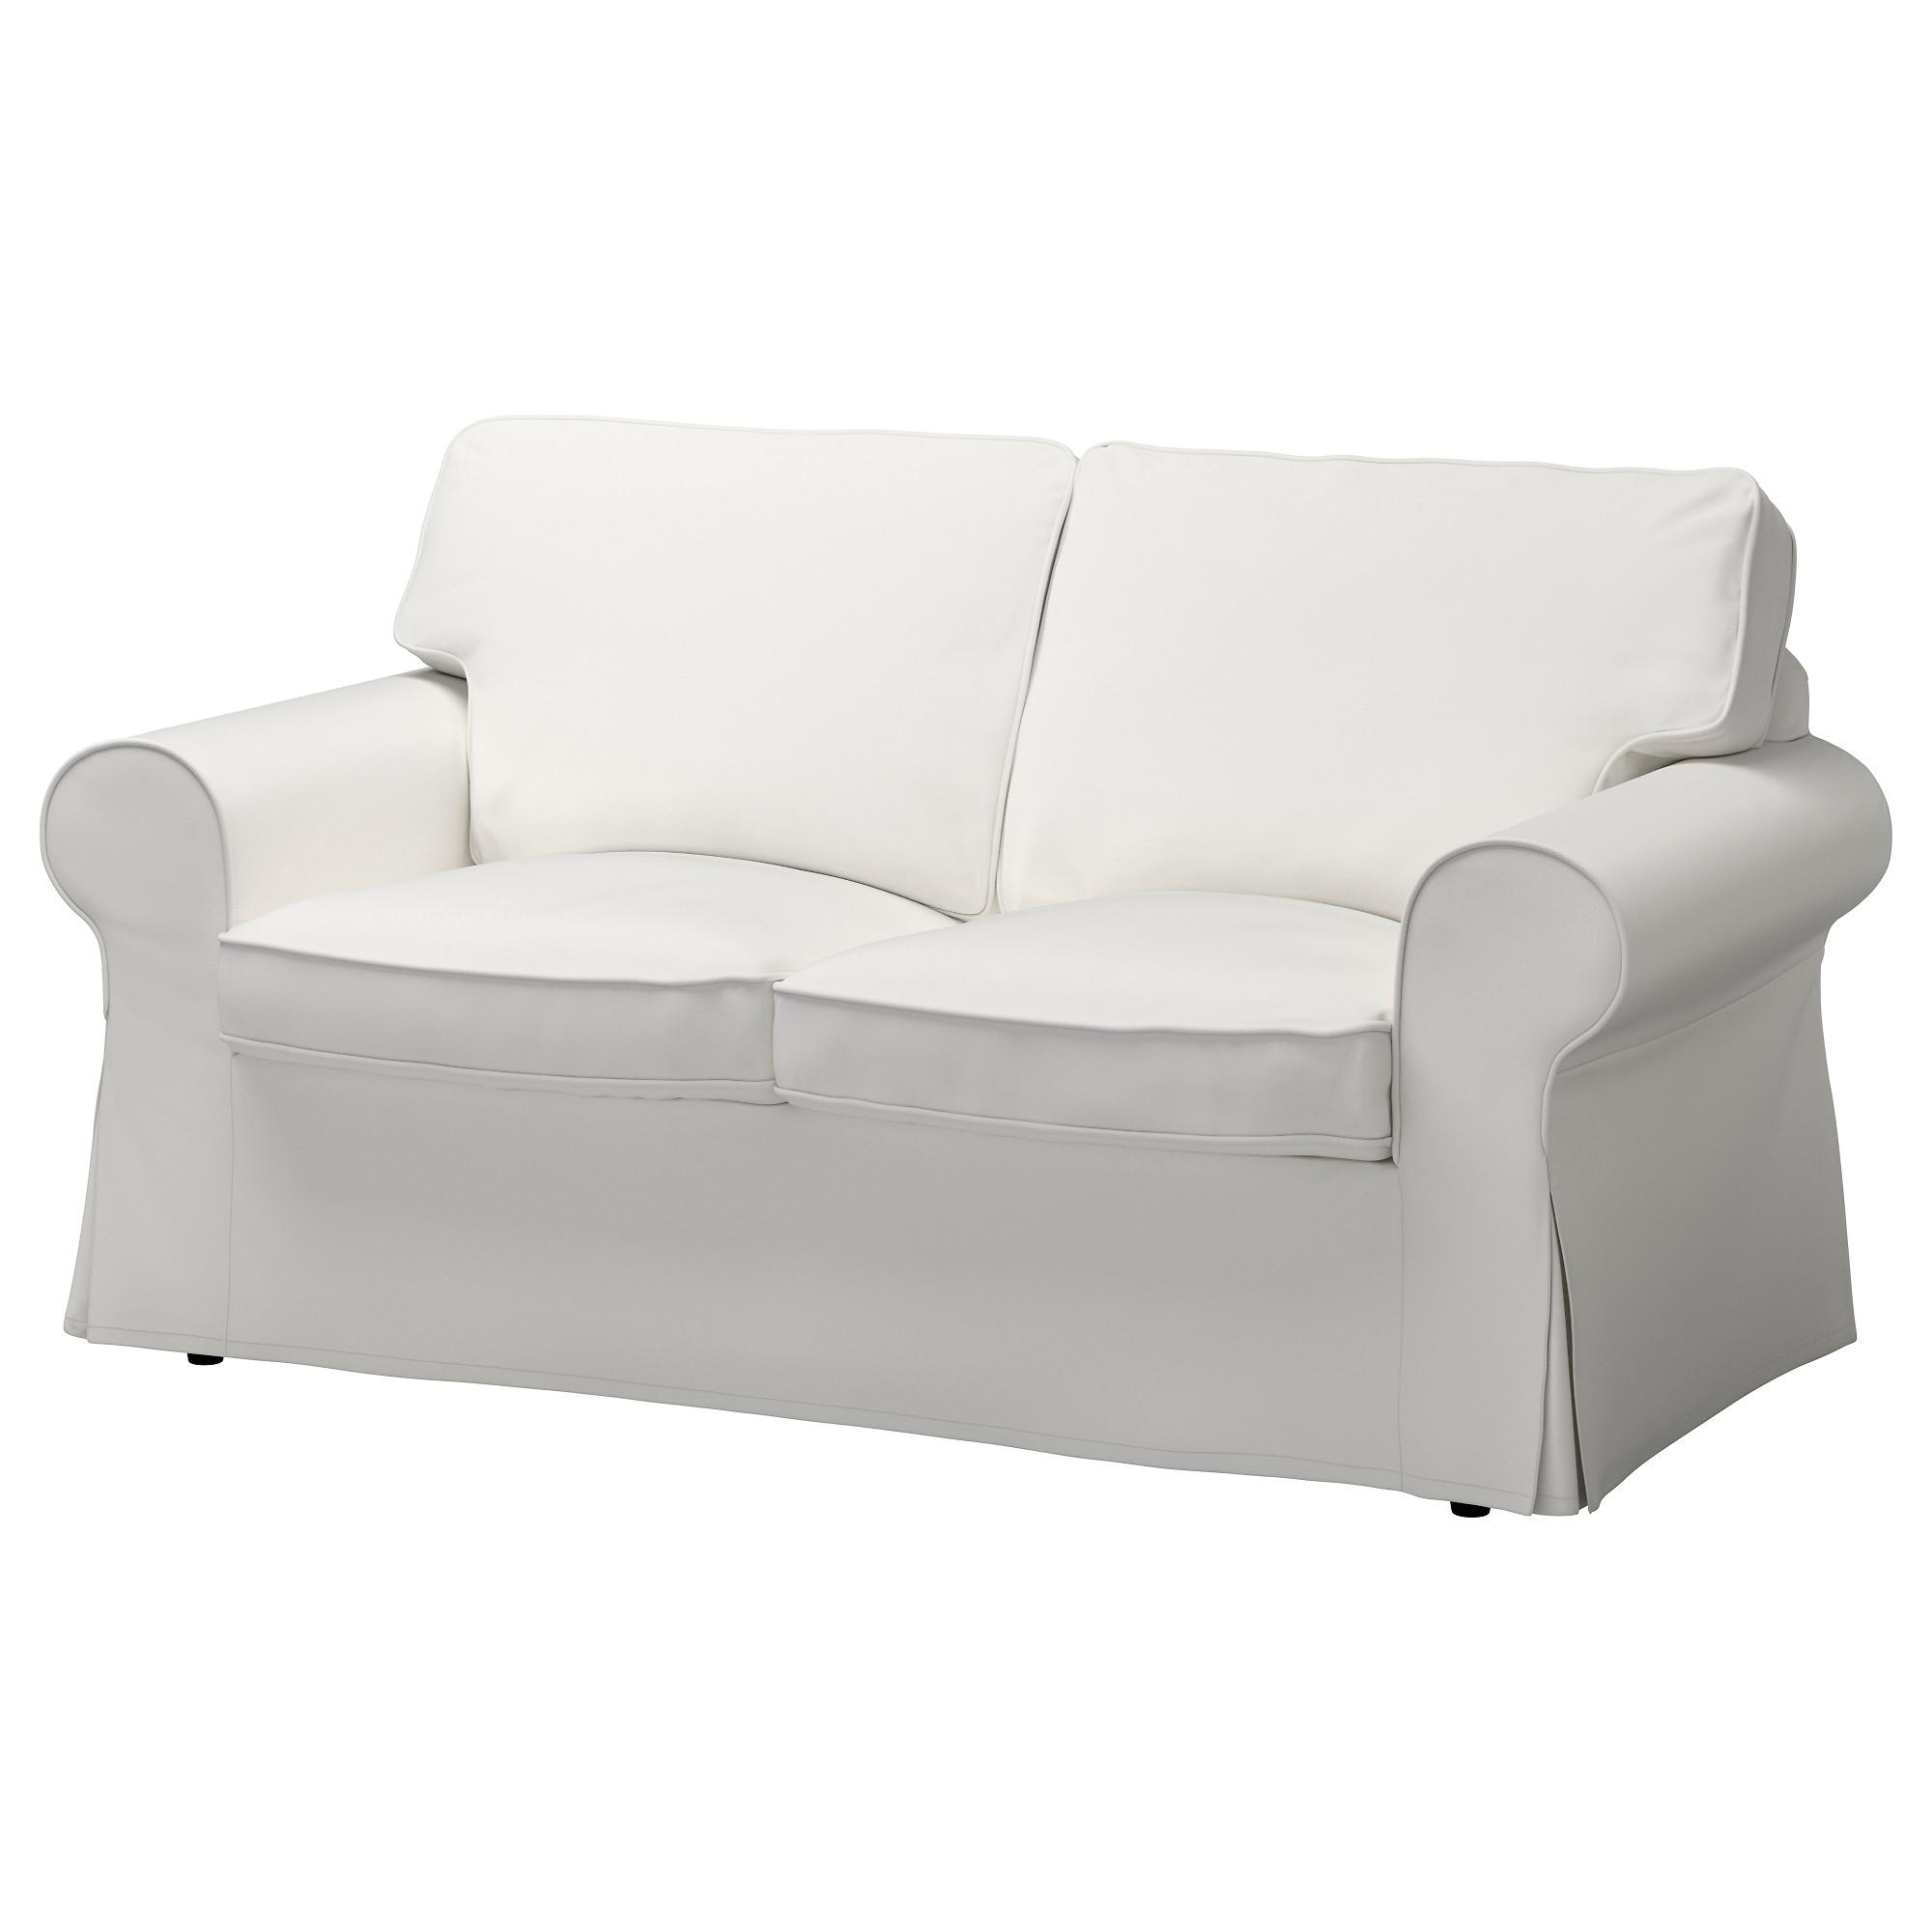 6 Easy Steps On Cleaning Your White Sofa: 2019 Latest Narrow Depth Sofas